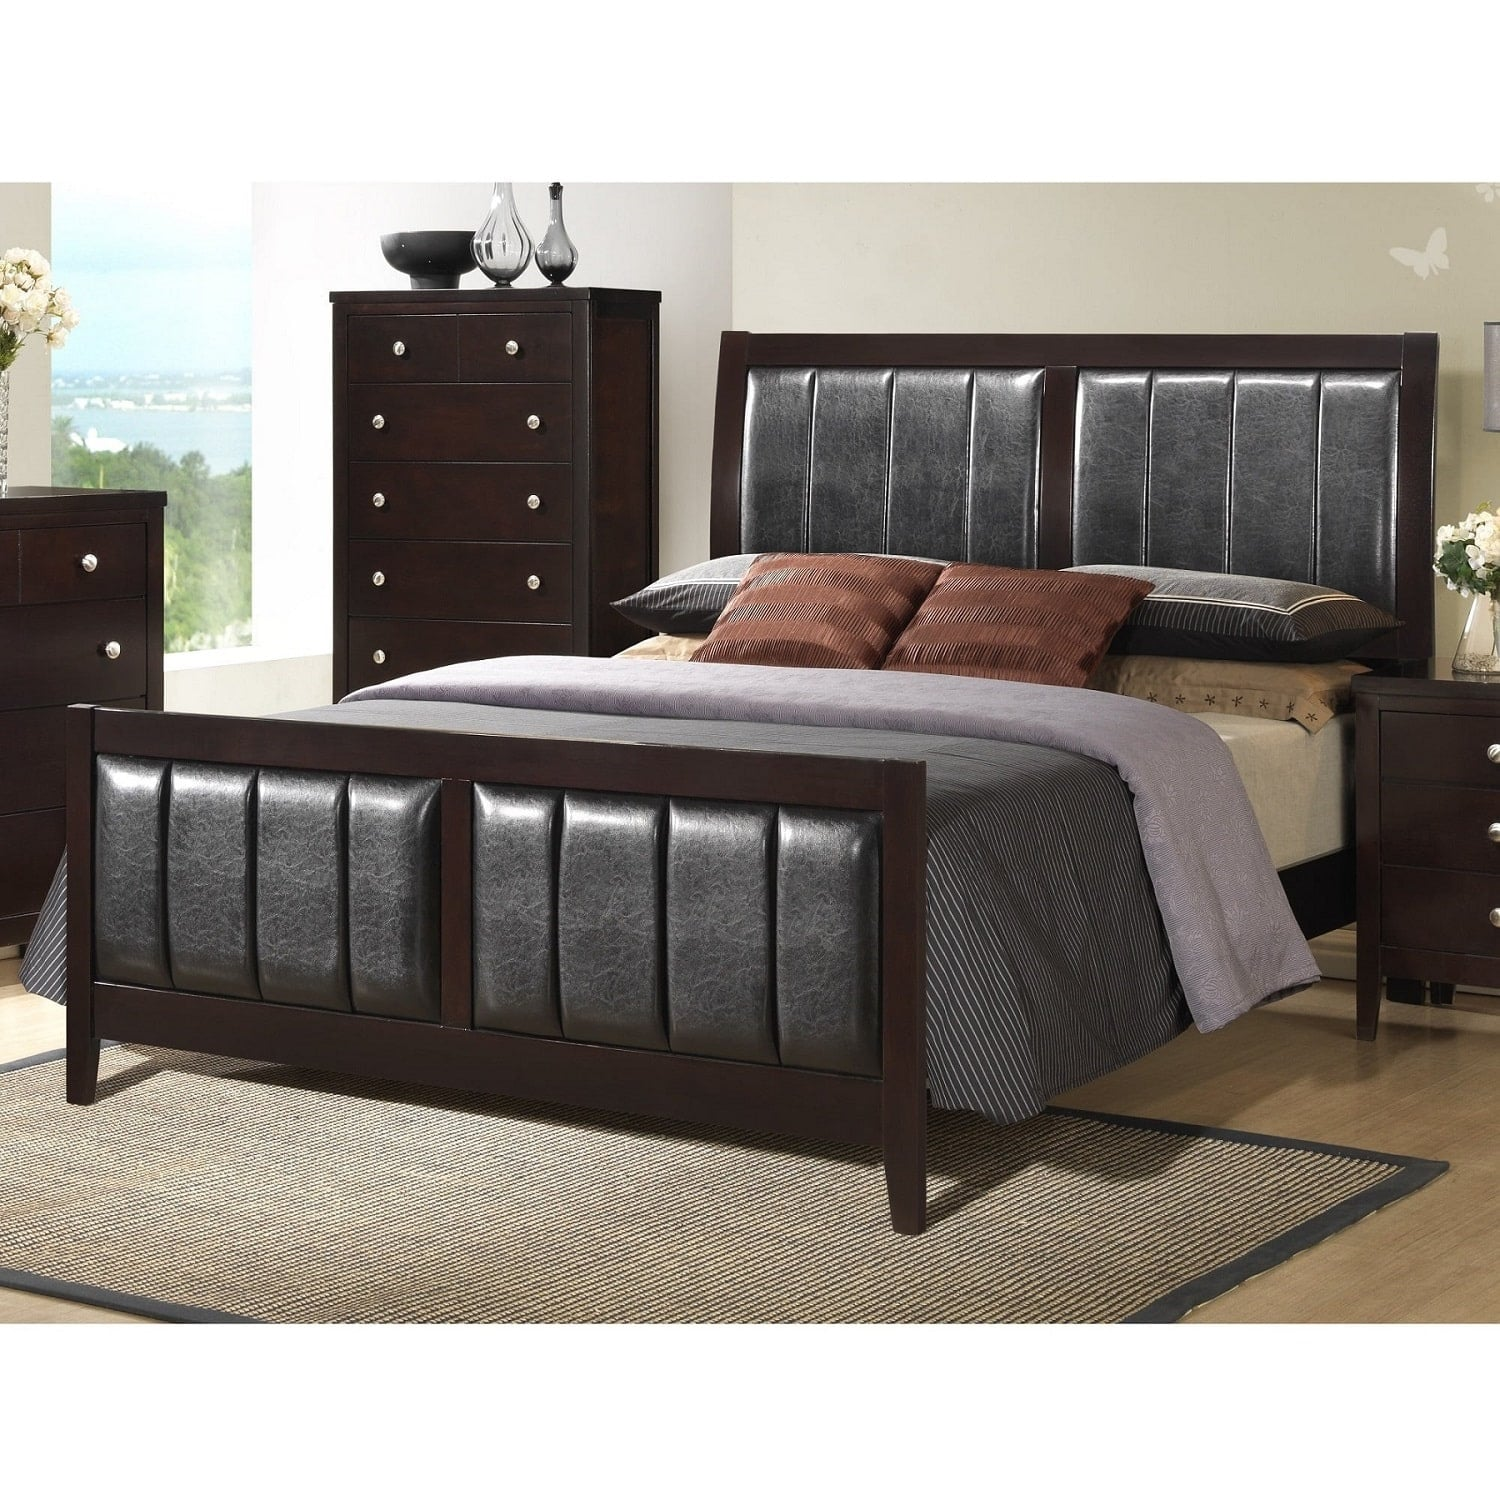 7-Piece Lawrence Queen Bedroom Collection